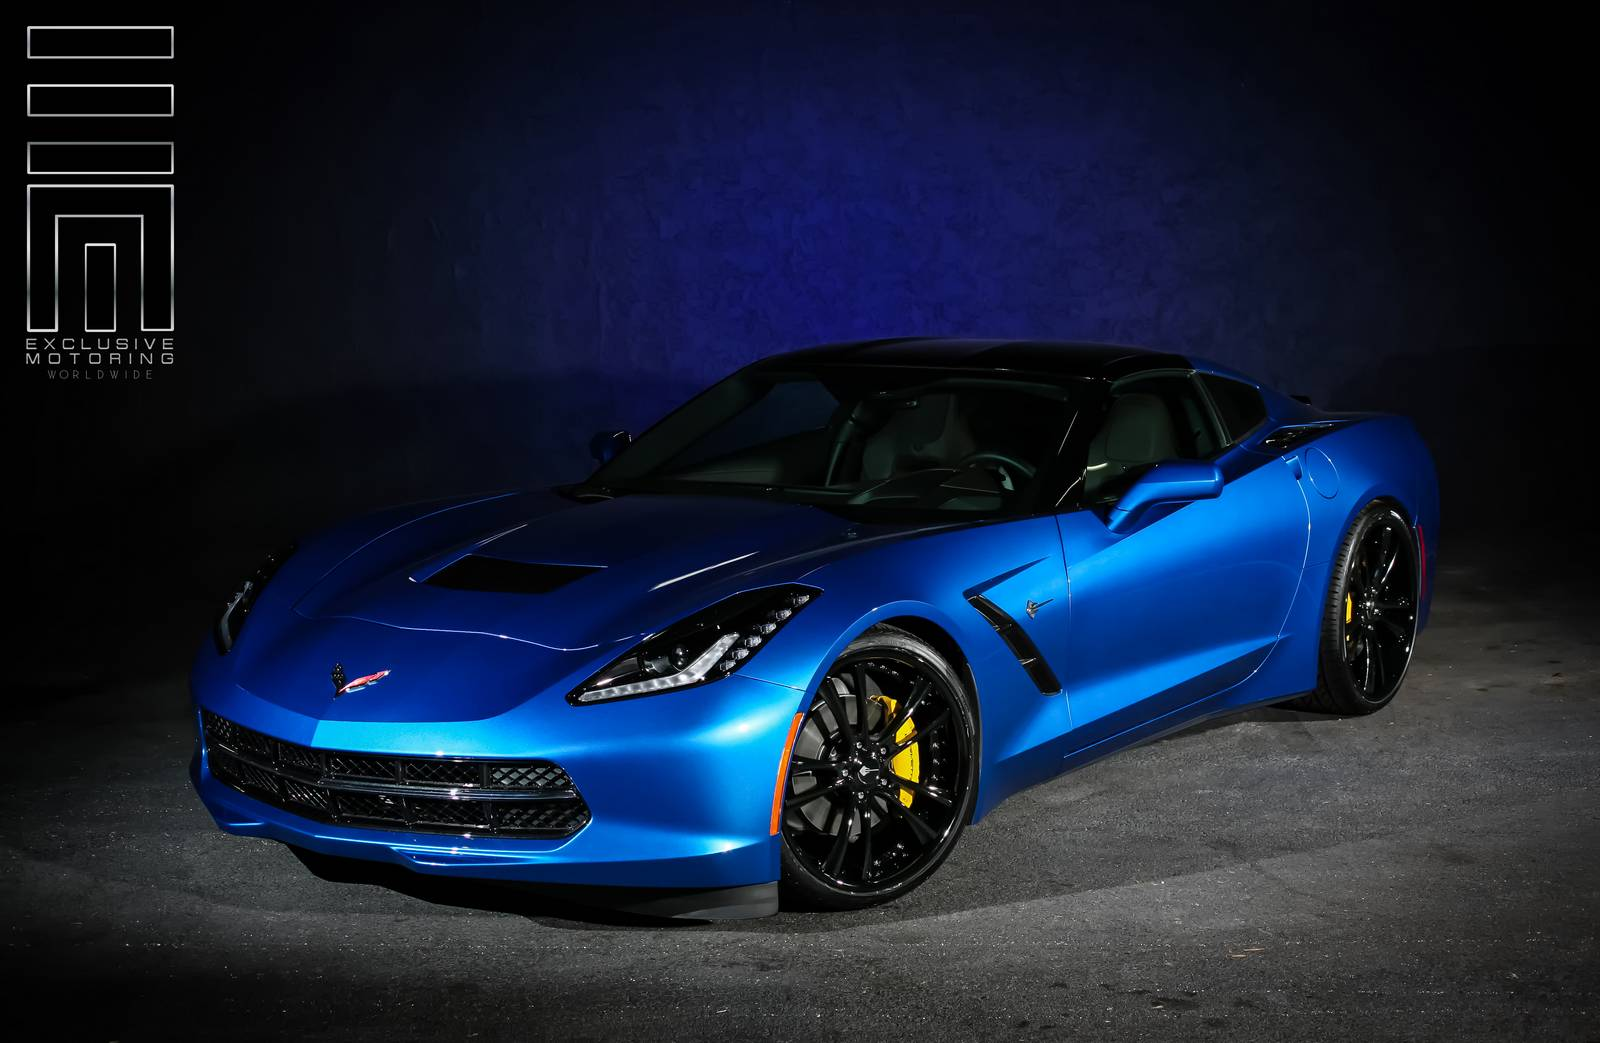 http://www.gtspirit.com/wp-content/gallery/2014-corvette-stingray/2014-corvette-stingray-3.jpg